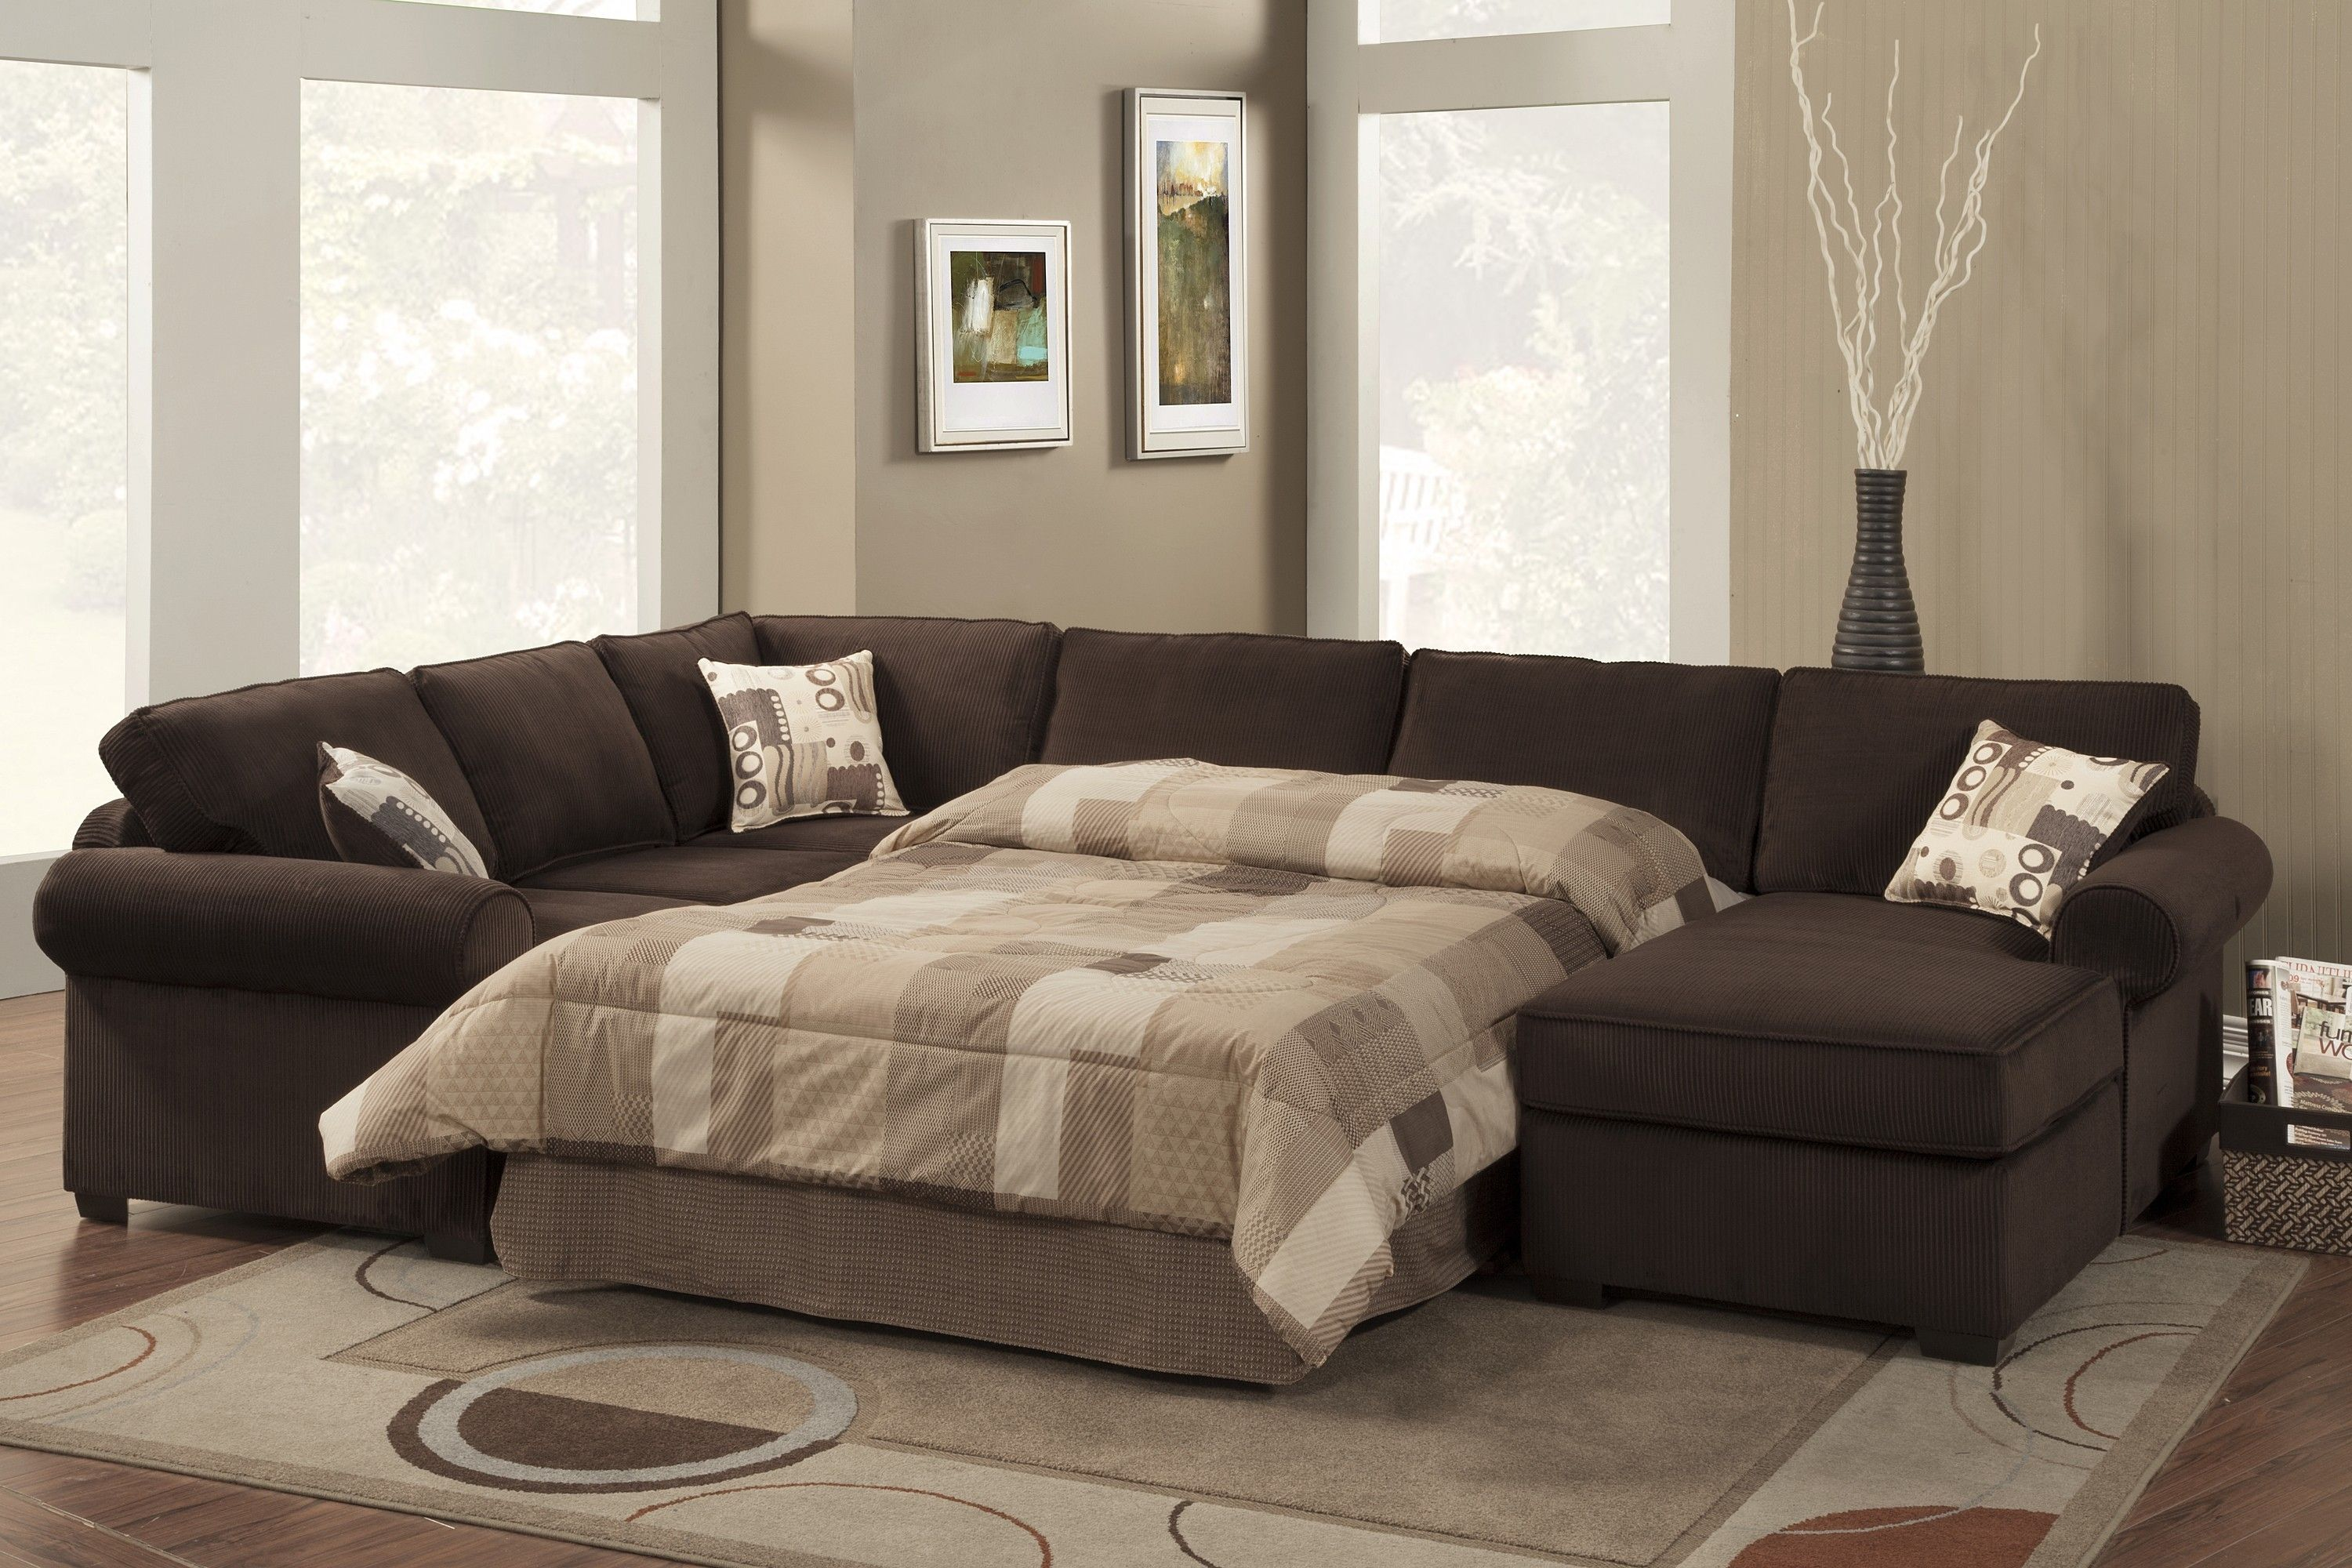 Living Room Modern Modern Sofa Bed Queen And Also Modern